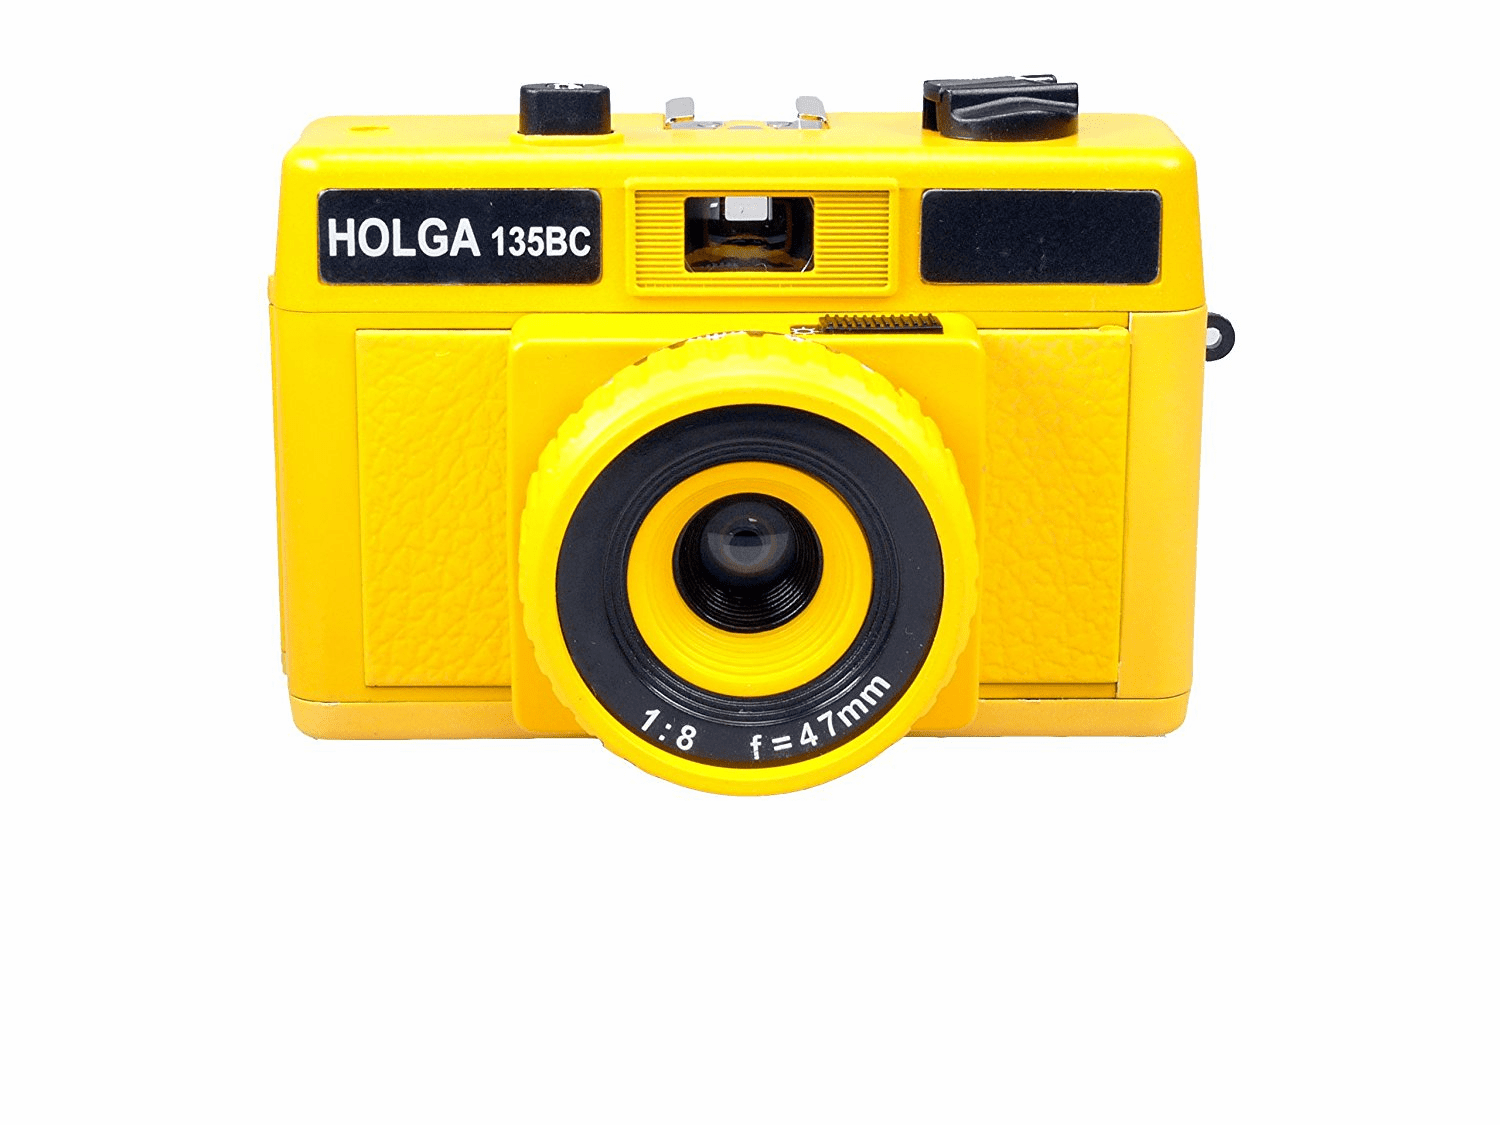 Holga Holgaglo Glow in the Dark 135BC 35mm Camera Yellow